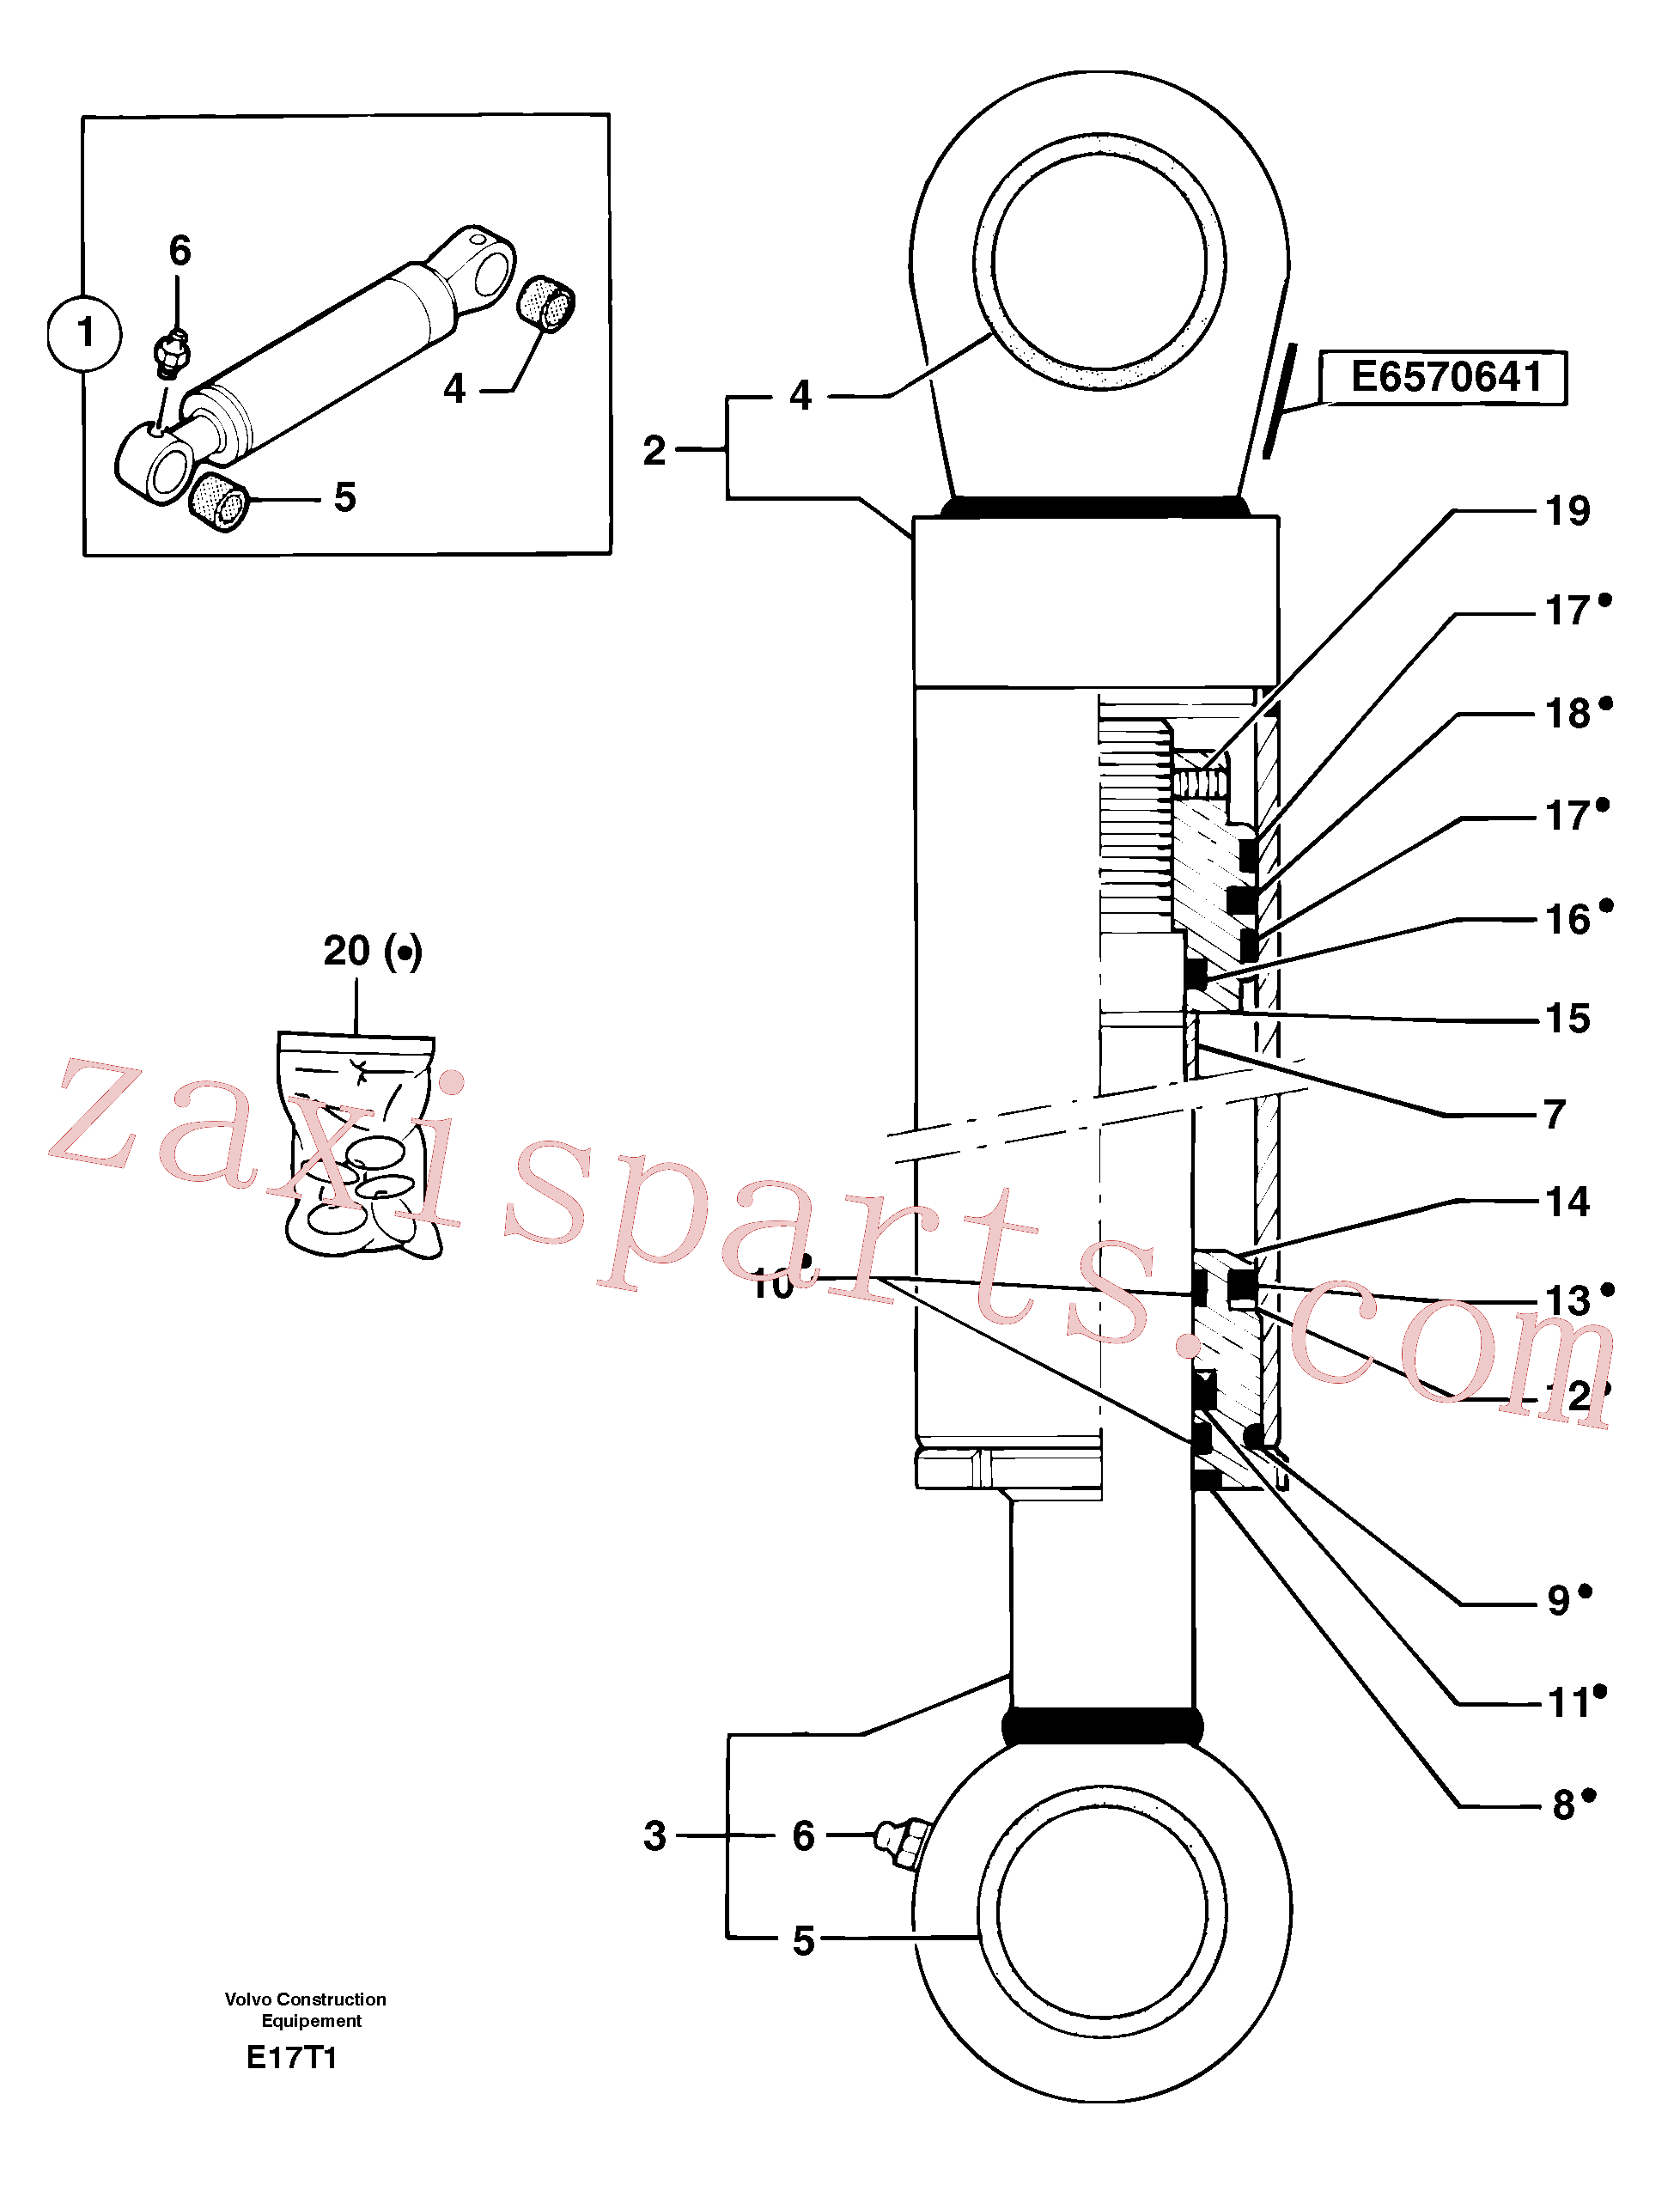 PJ7414622 for Volvo Boom offset cylinder(E17T1 assembly)